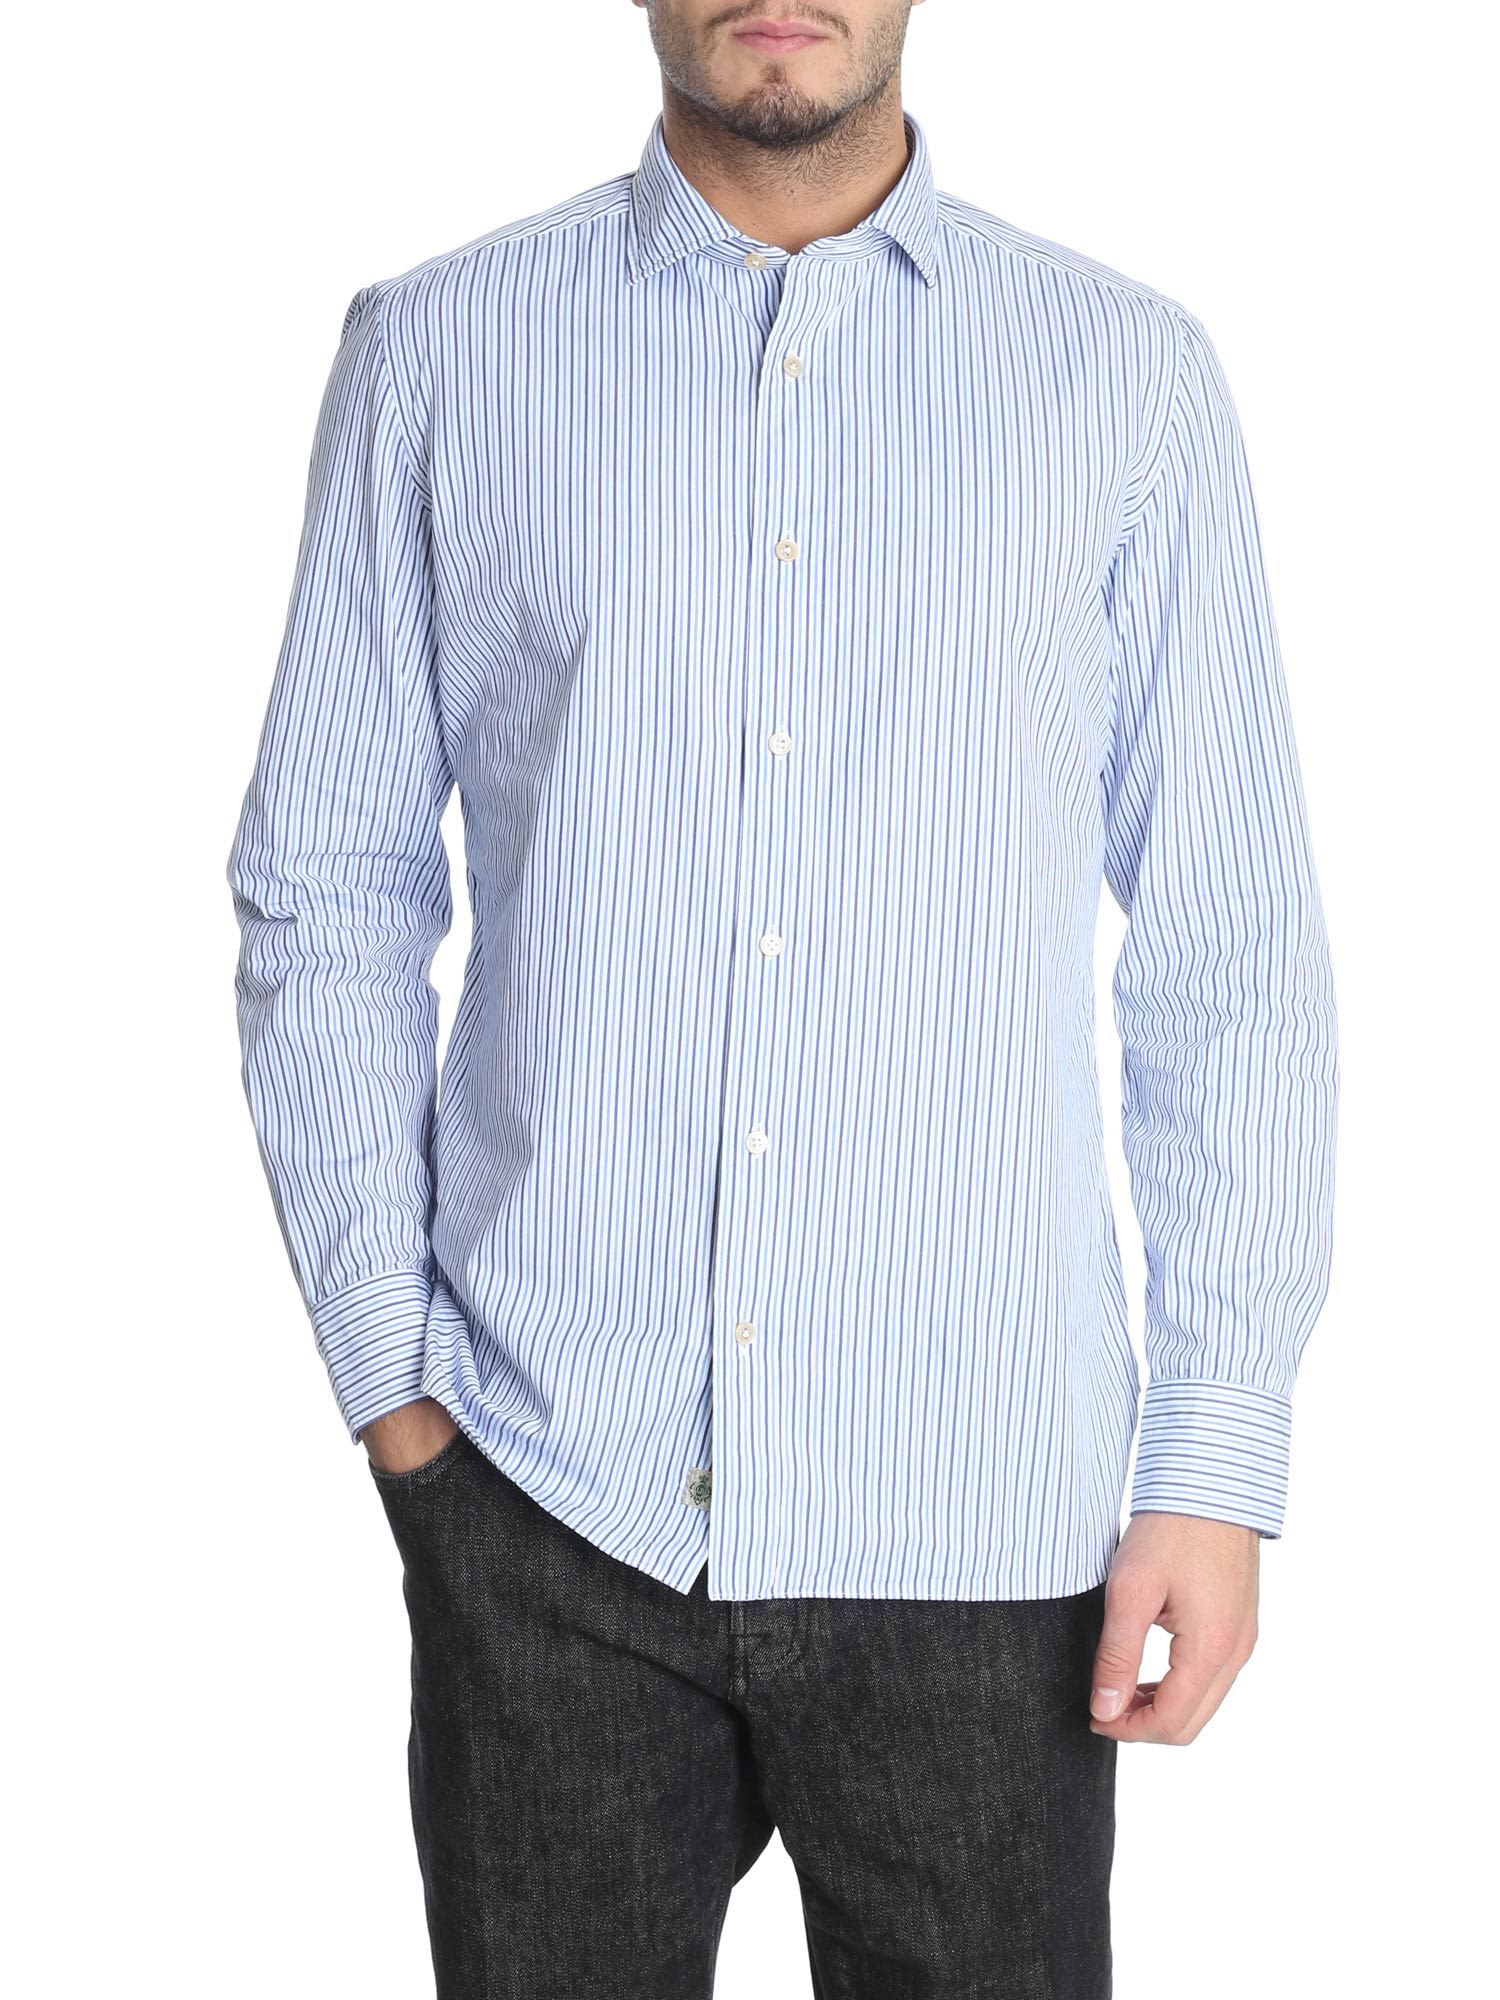 LUIGI BORRELLI Striped Print Shirt in White/Blue